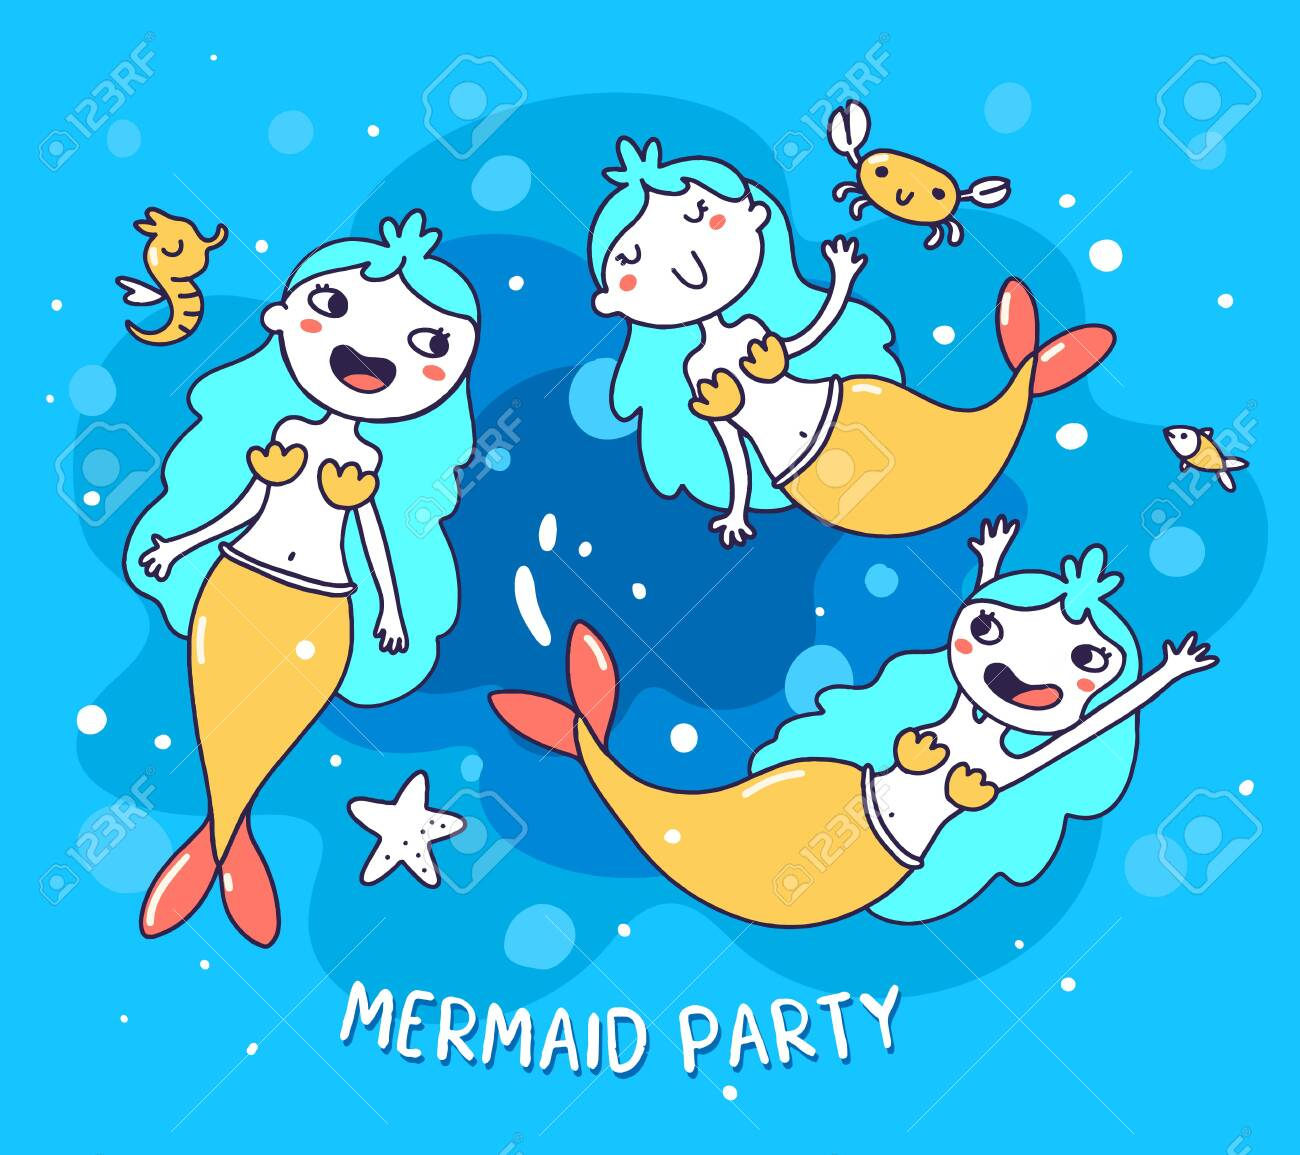 Vector Illustration Of Three Happy Little Mermaid With Sea Horse Royalty Free Cliparts Vectors And Stock Illustration Image 154199196